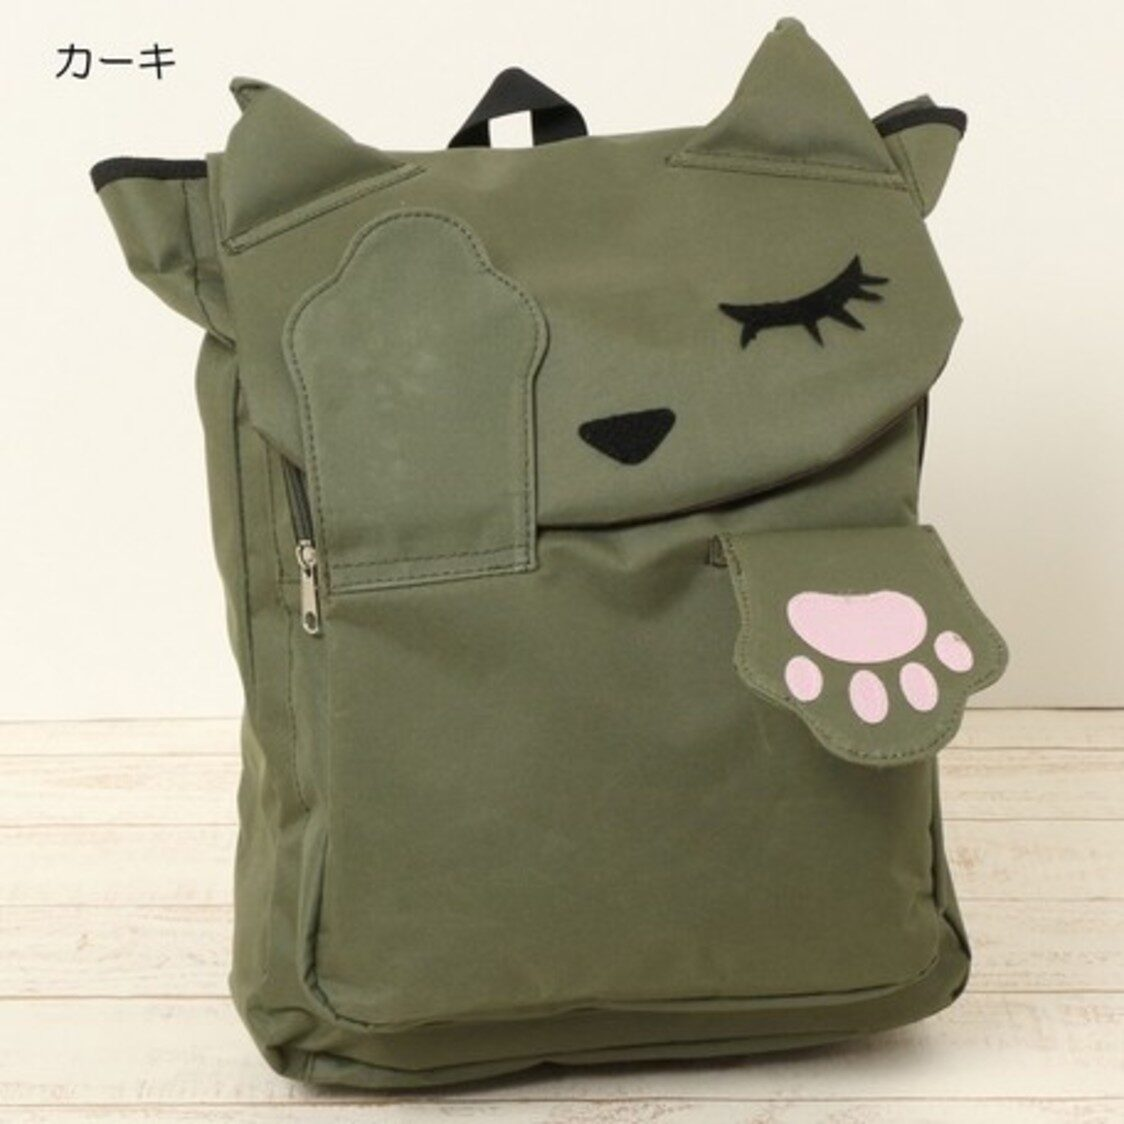 Peek-a-boo Backpack Khaki